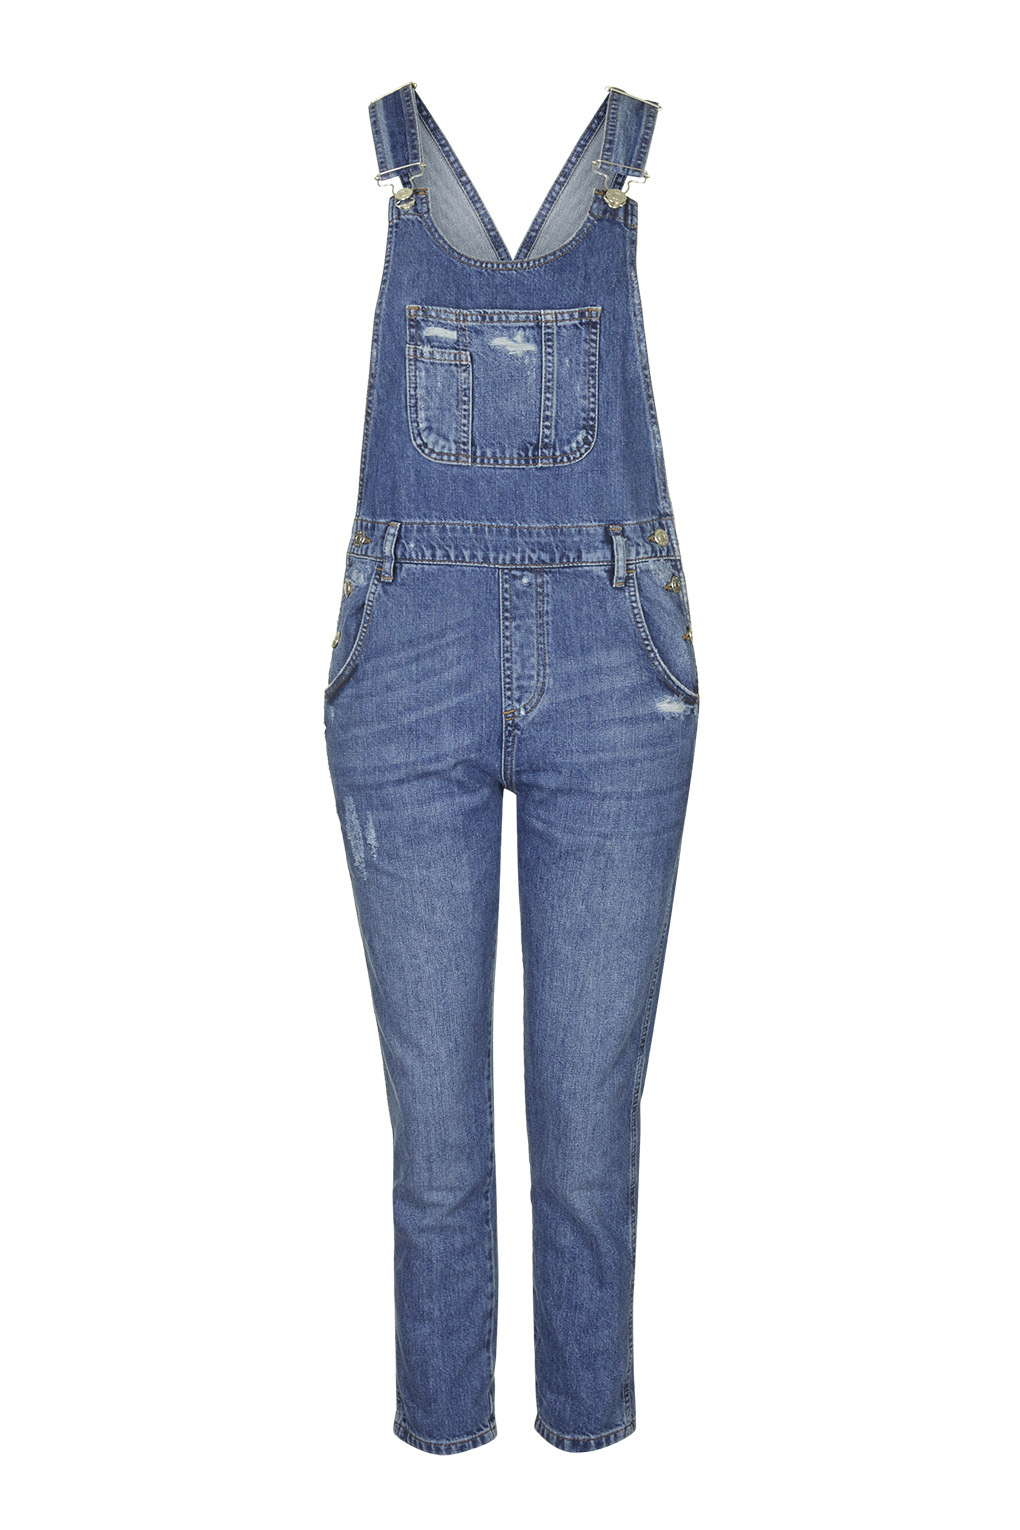 Topshop Moto Long Denim Dungaree In Blue MID STONE Lyst